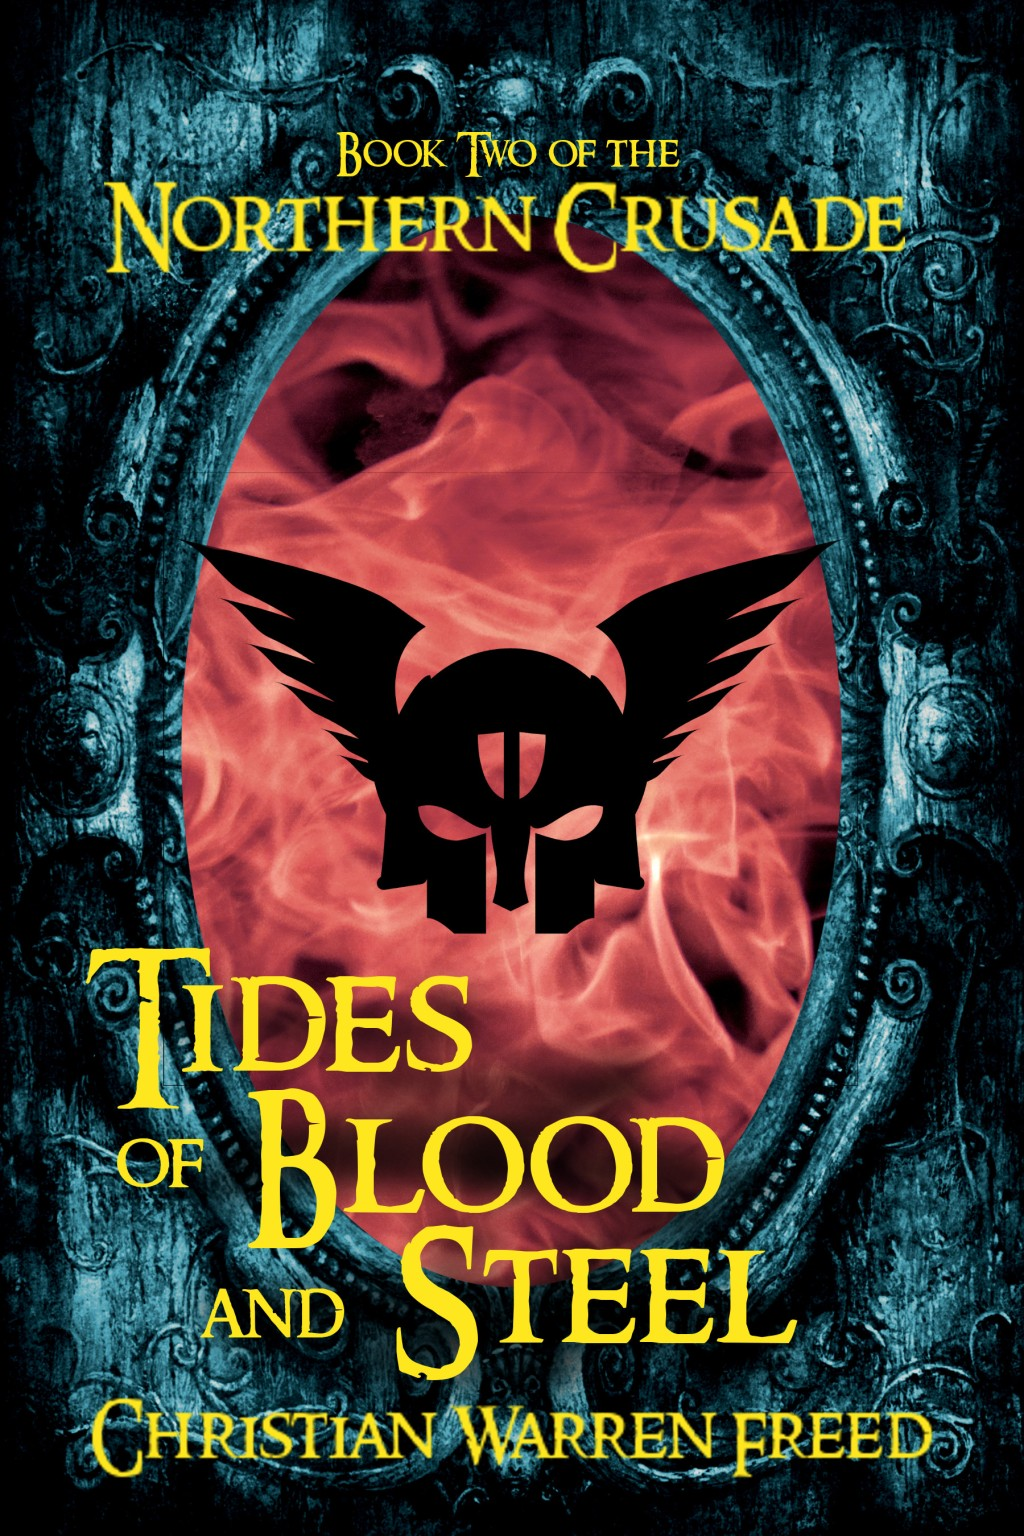 Tides_of_Blood_and_Steel_New_Cover